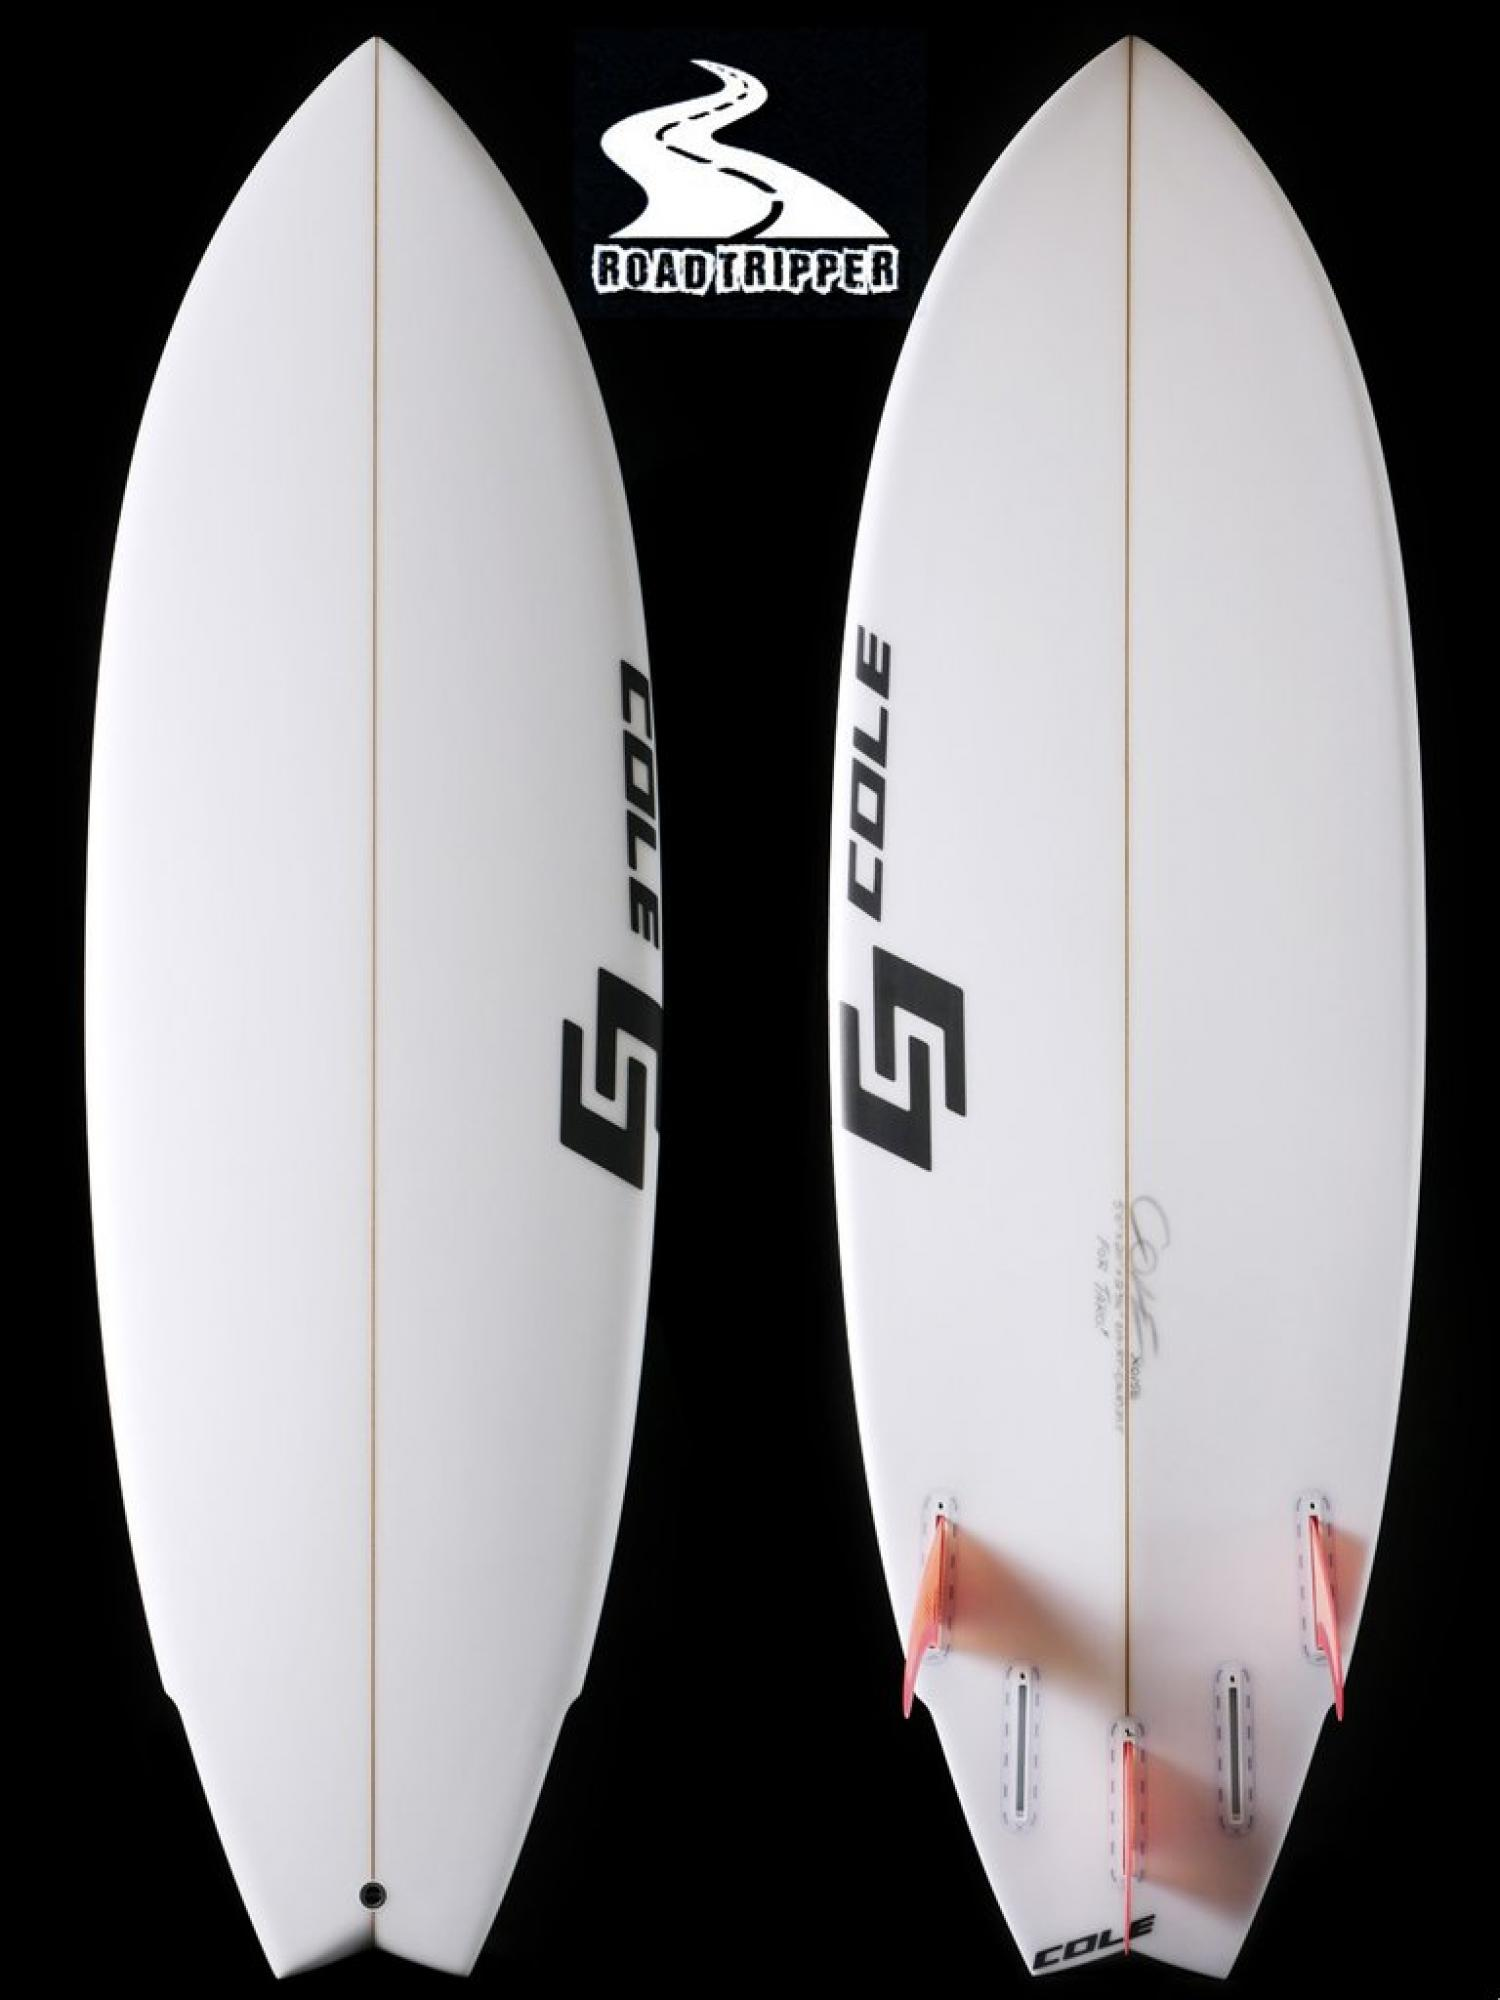 Road Tripper COLE SURFBOARDS Order accepted